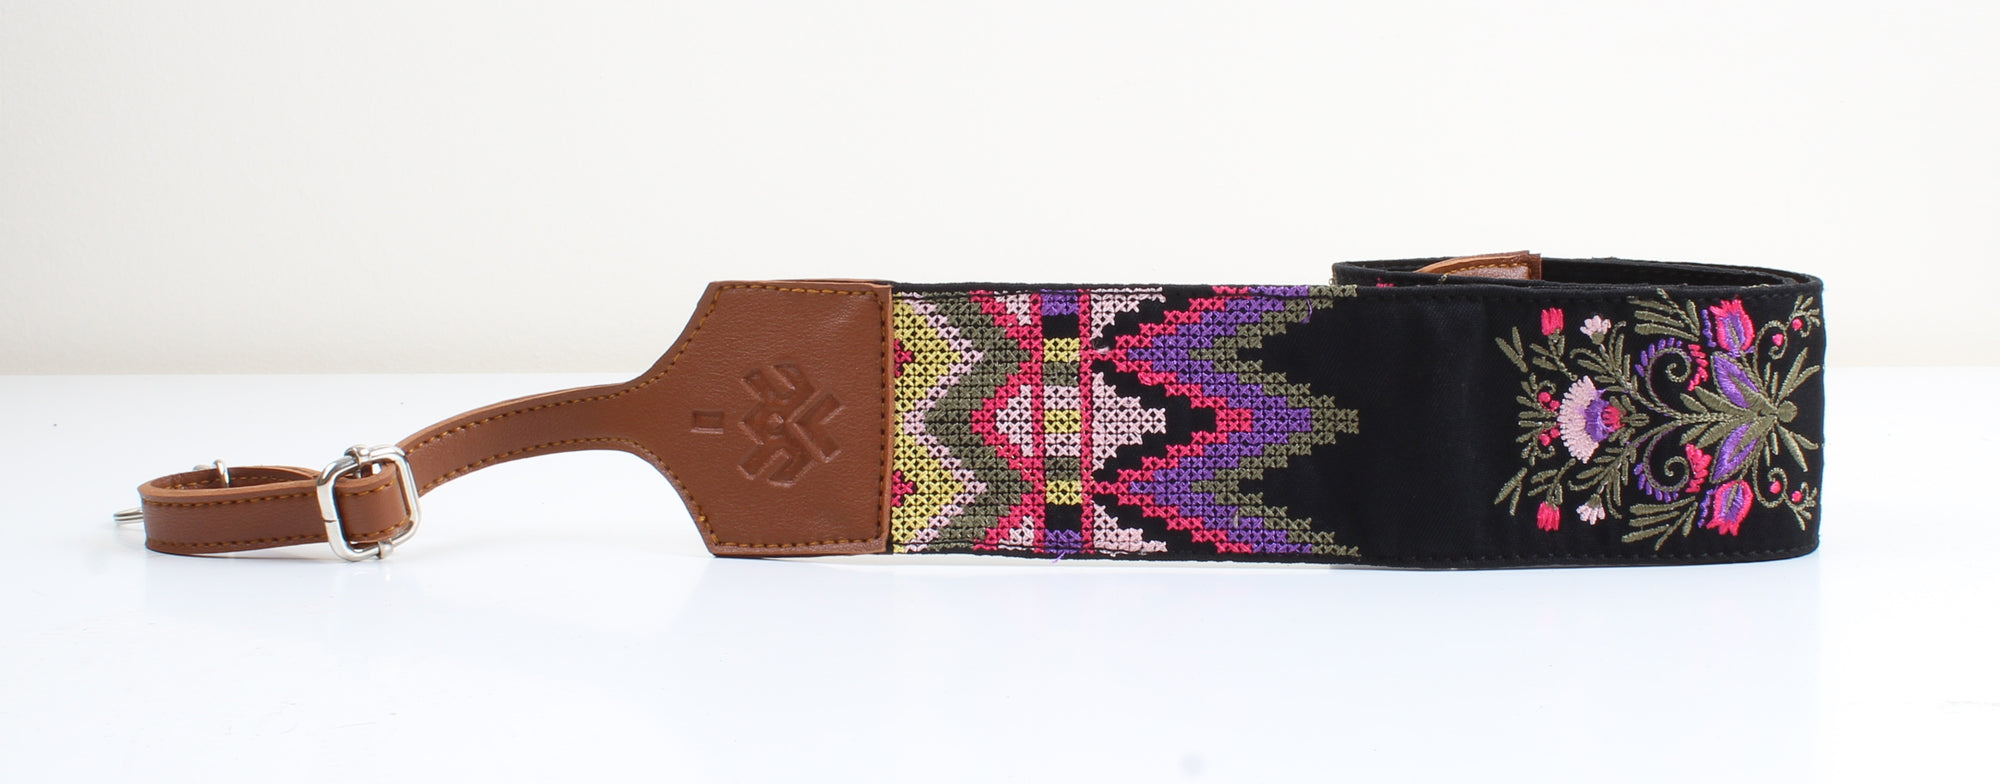 Havane x Drake patterned camera straps